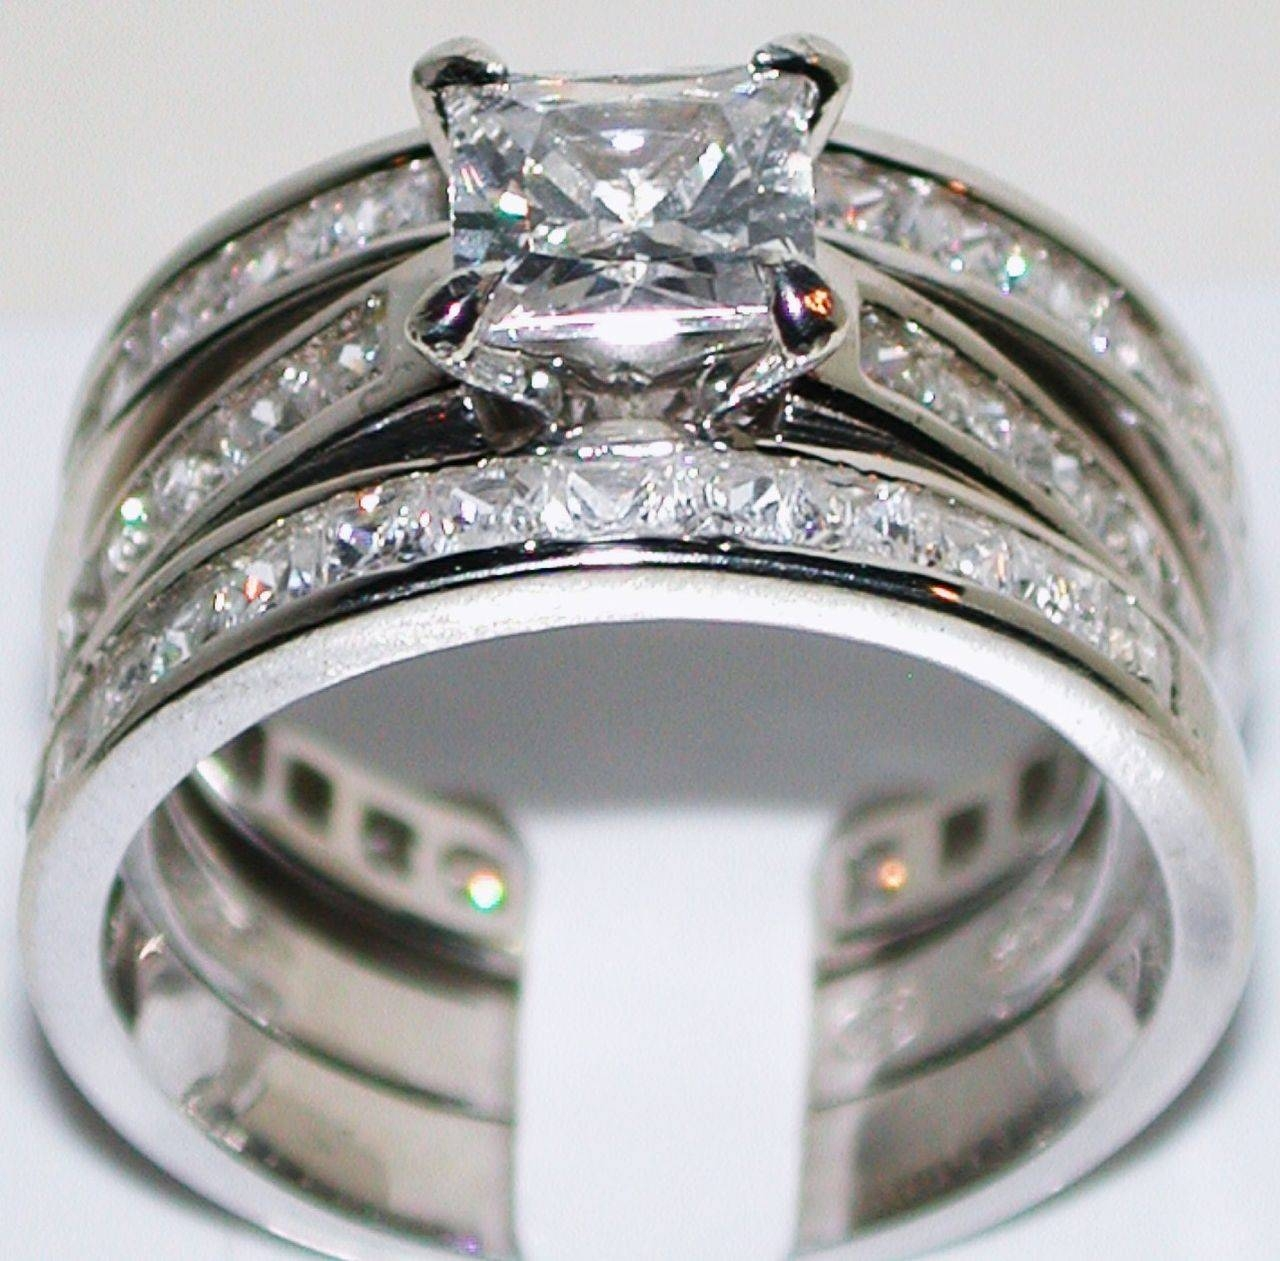 band ct pav setting open cathedral european engagement rings shop product diamond pave jewelry tall wide bands